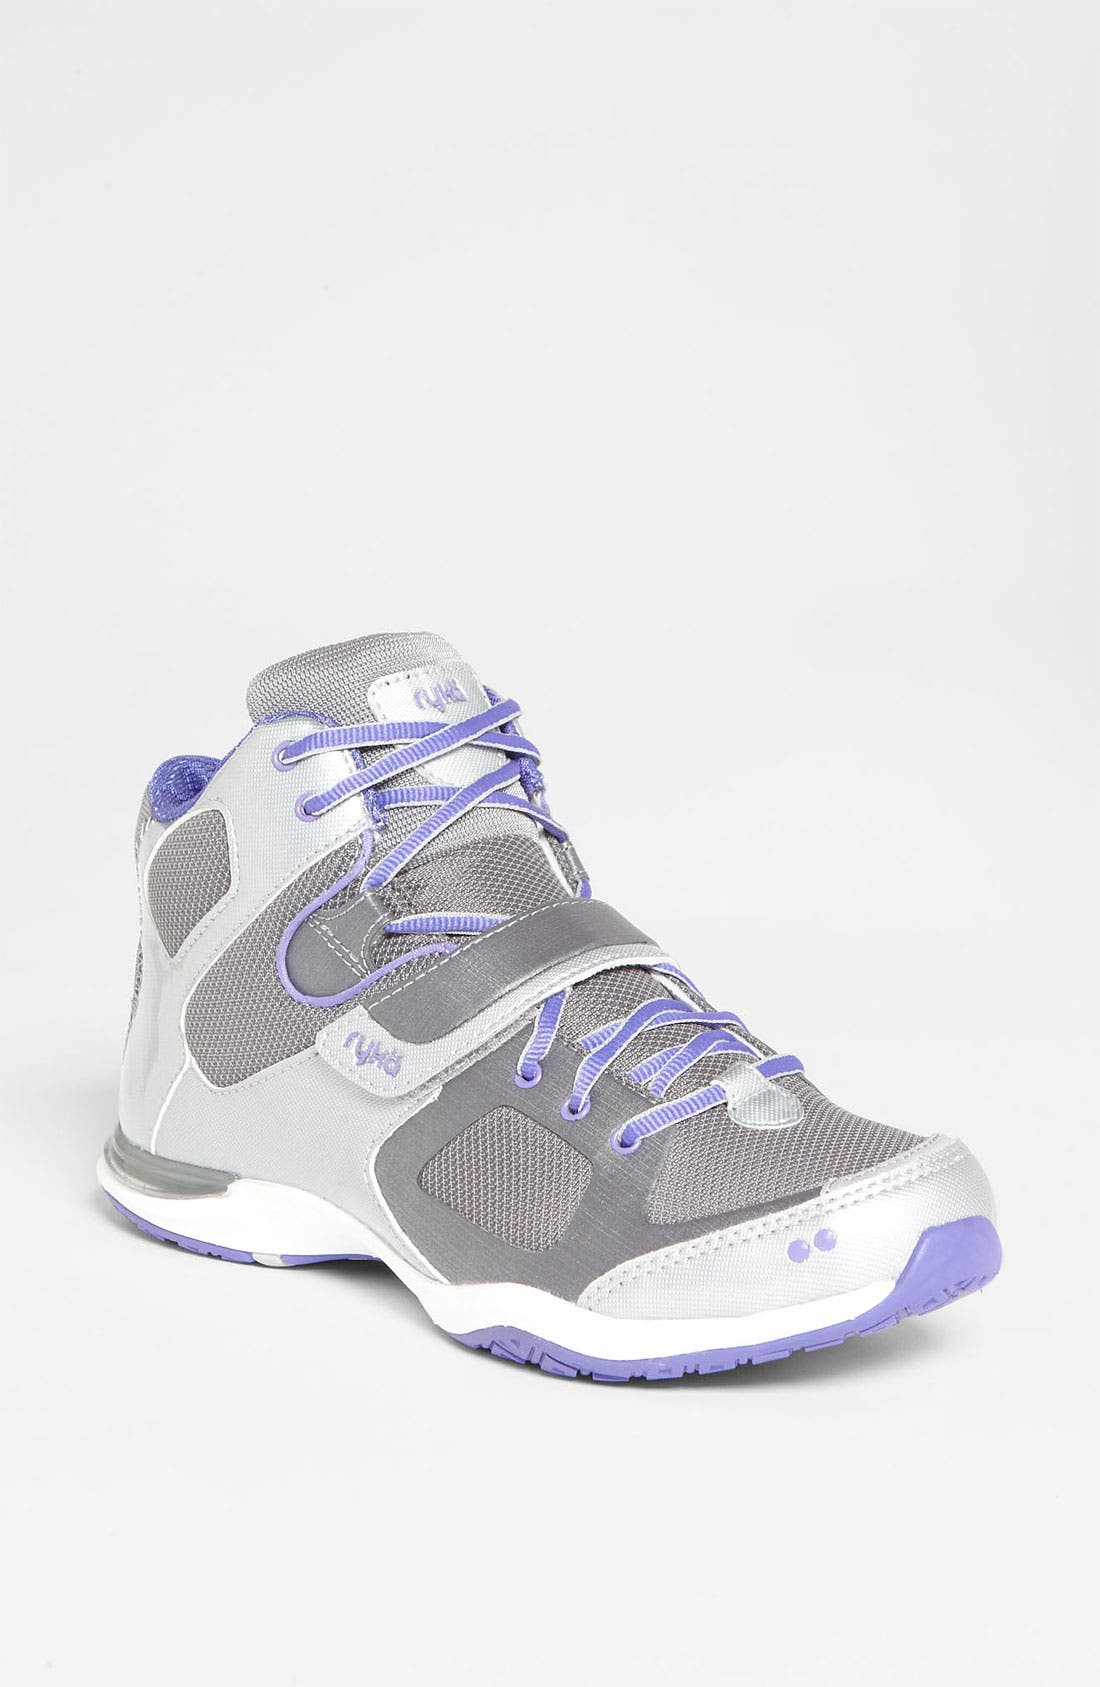 Alternate Image 1 Selected - rykä 'Downbeat' Training Shoe (Women)